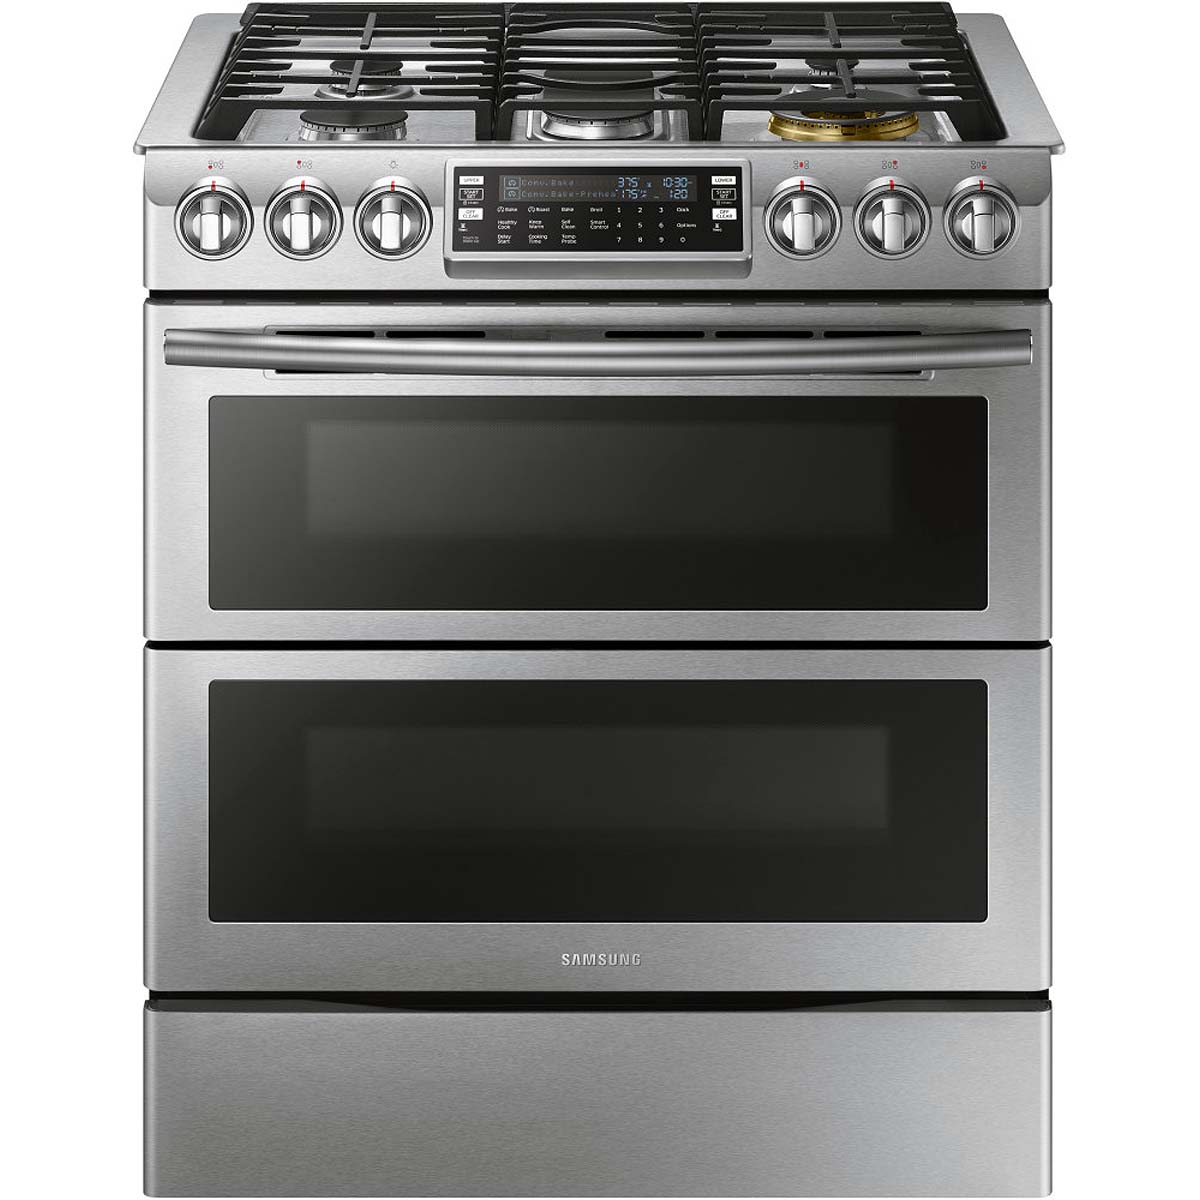 Samsung Stainless Steel Flex Duo Slide-In Gas Range